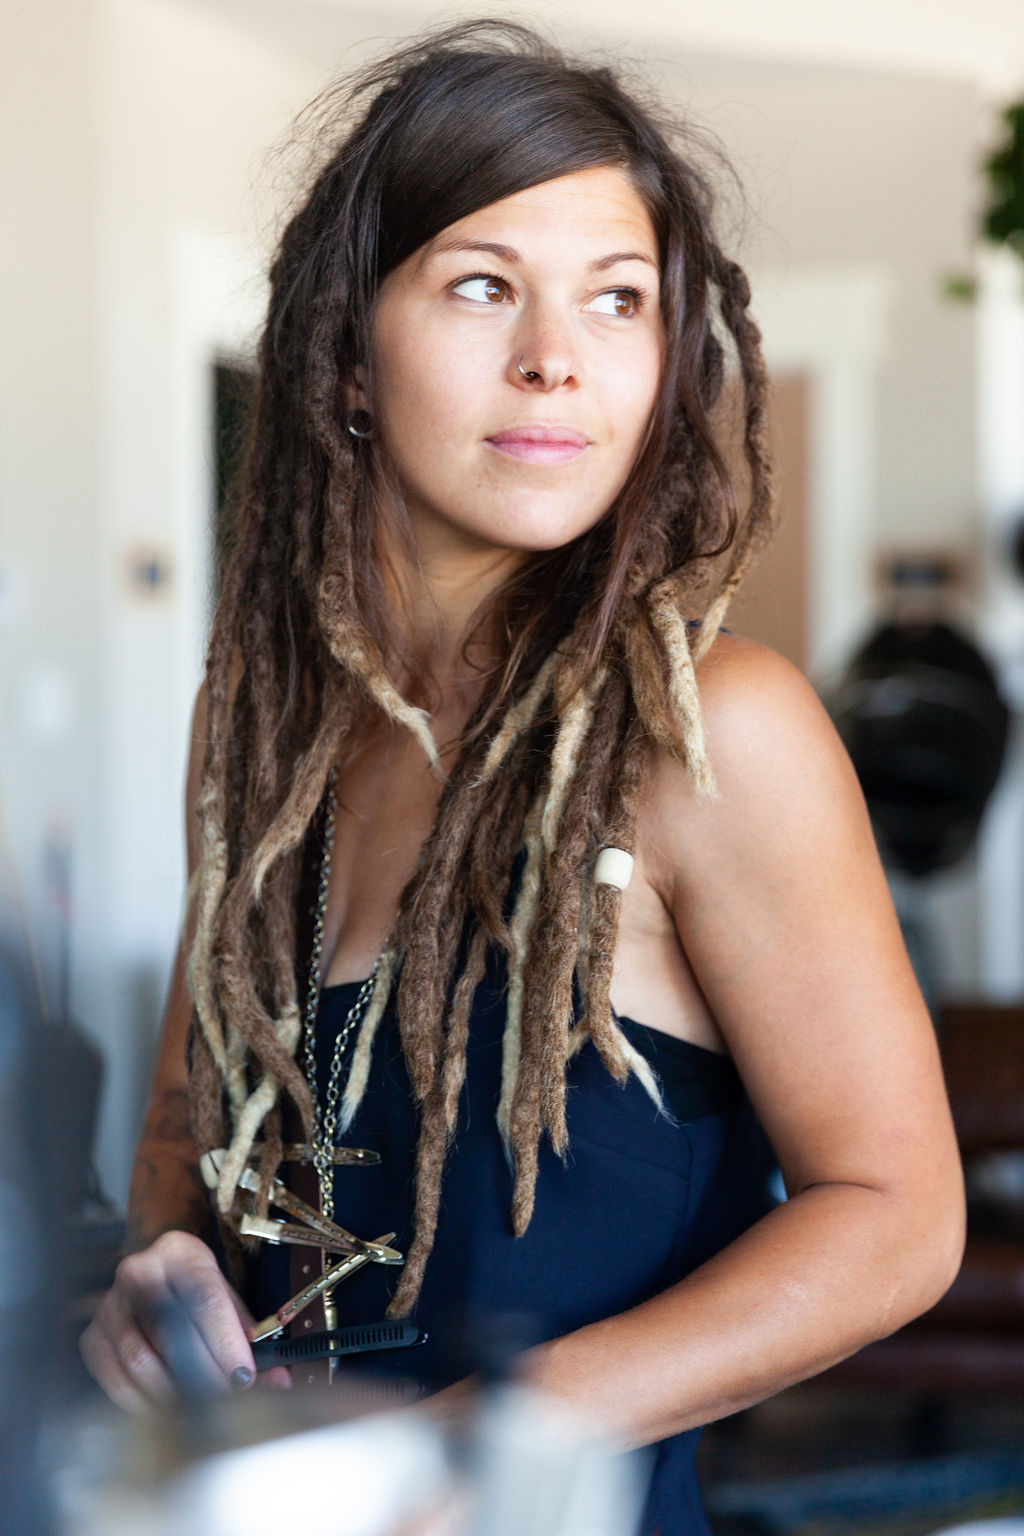 Dreadlocks - New Dreadlocks: $75/hrDreadlocks Maintenance: $45/hr Touching up can take between 3-4 hours on a full head of locks. We recommend maintenance every 2-3 months for new dreads until they are more matured.Dreadlocks Extensions: Price bases upon consultationDeep Cleanse: From $60 This is usually recommend at least twice a year to get your locks good and clean and remove whatever your regular shampoo may by leaving behind!